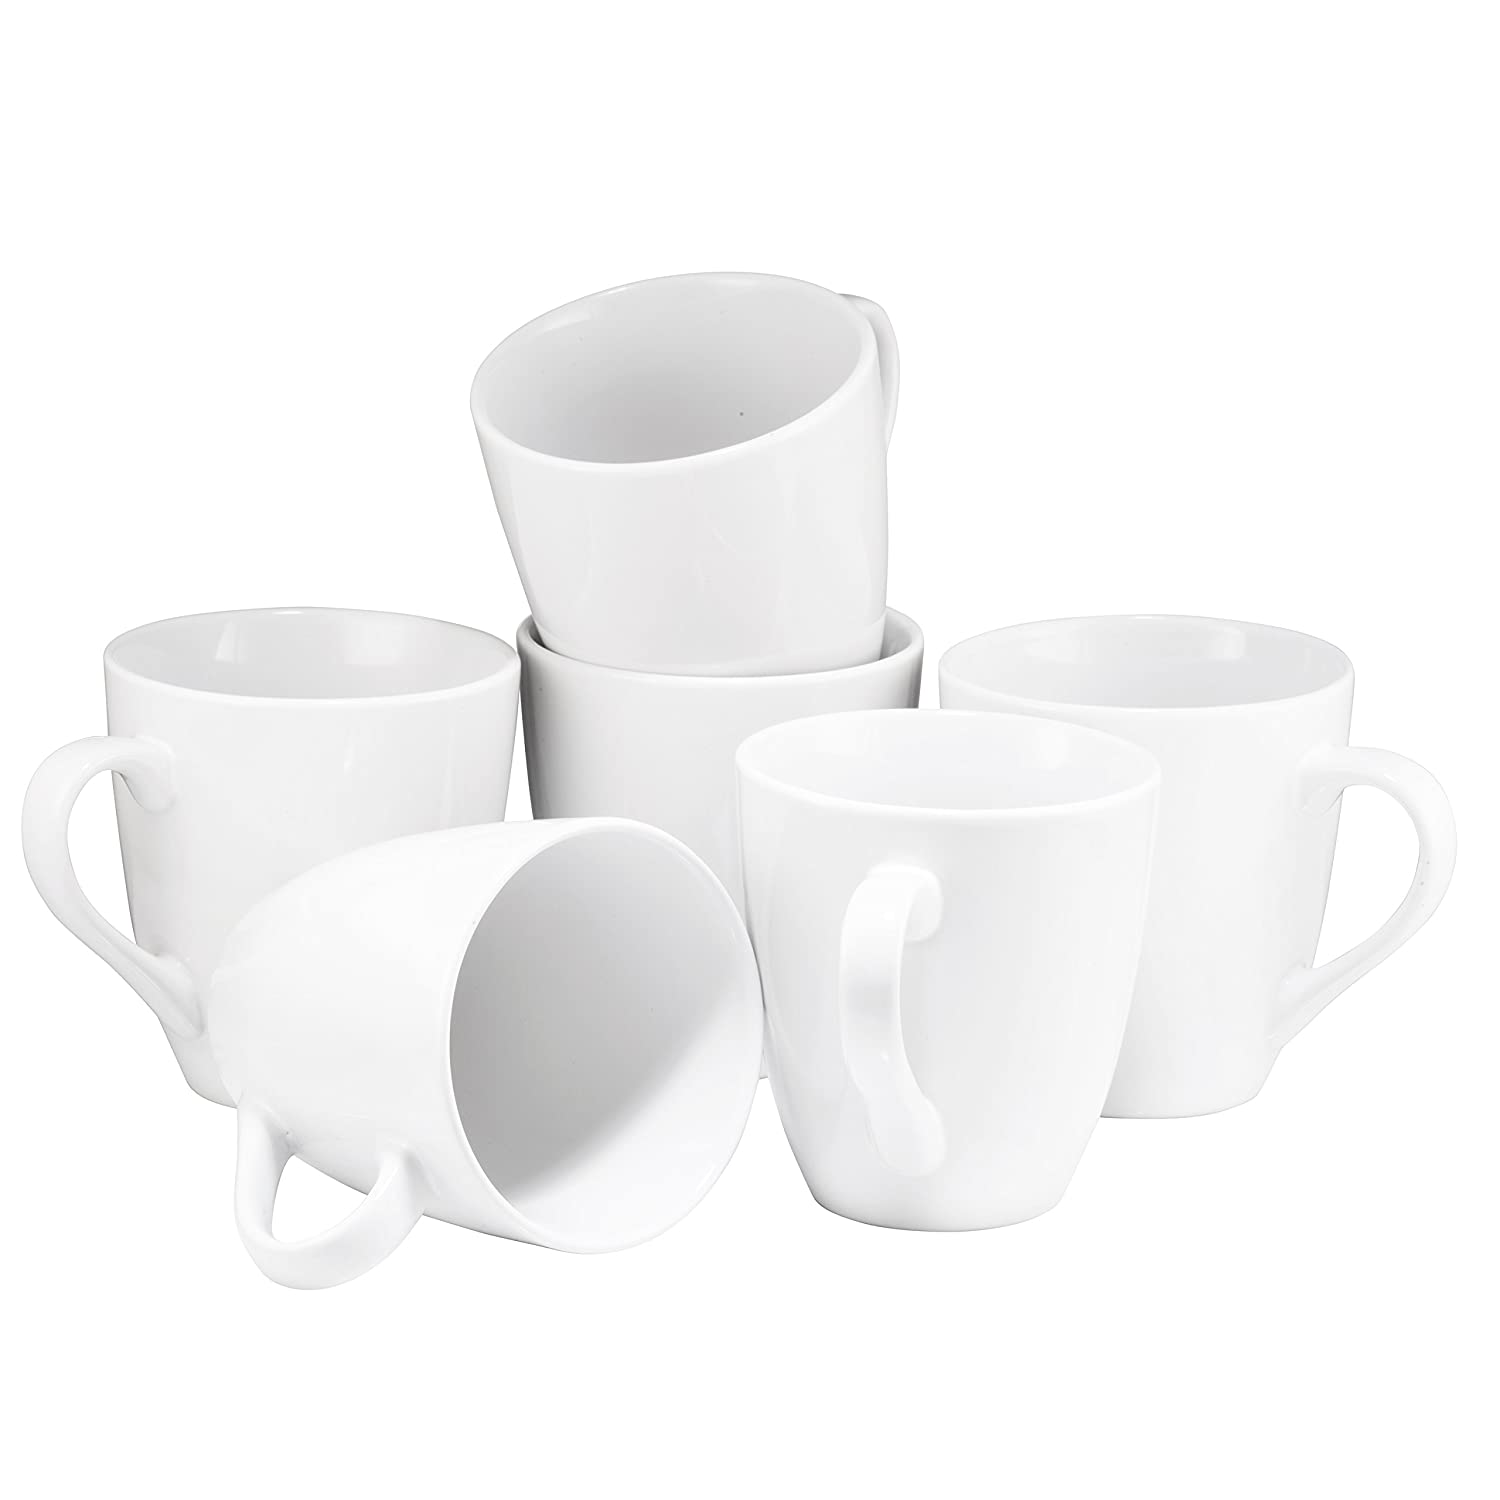 Coffee Mug Set Set of 6 Large-sized 16 Ounce Ceramic Coffee Mugs Restaurant Coffee Mugs By Bruntmor Matte Black BR3728